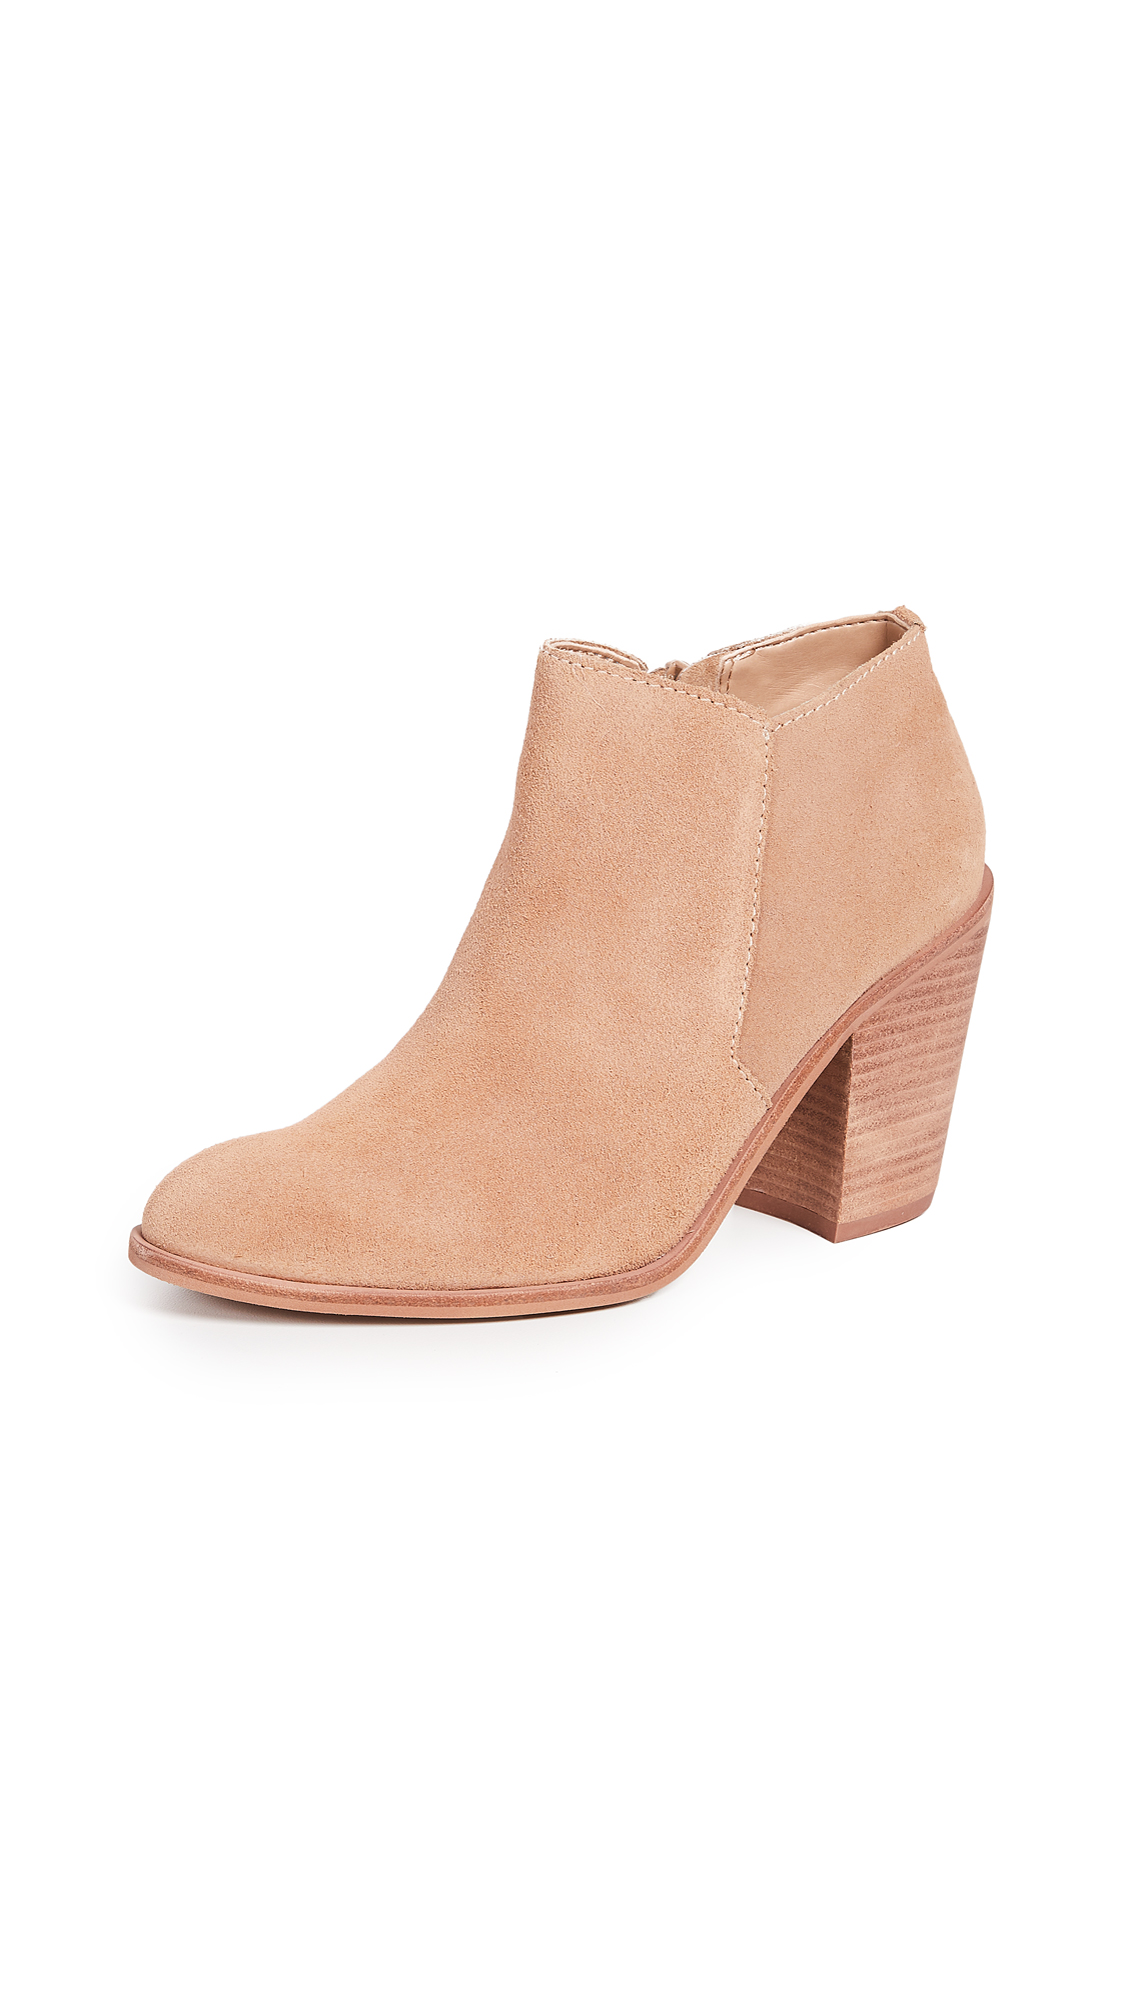 KAANAS Bologna Stacked Heel Booties - Almond